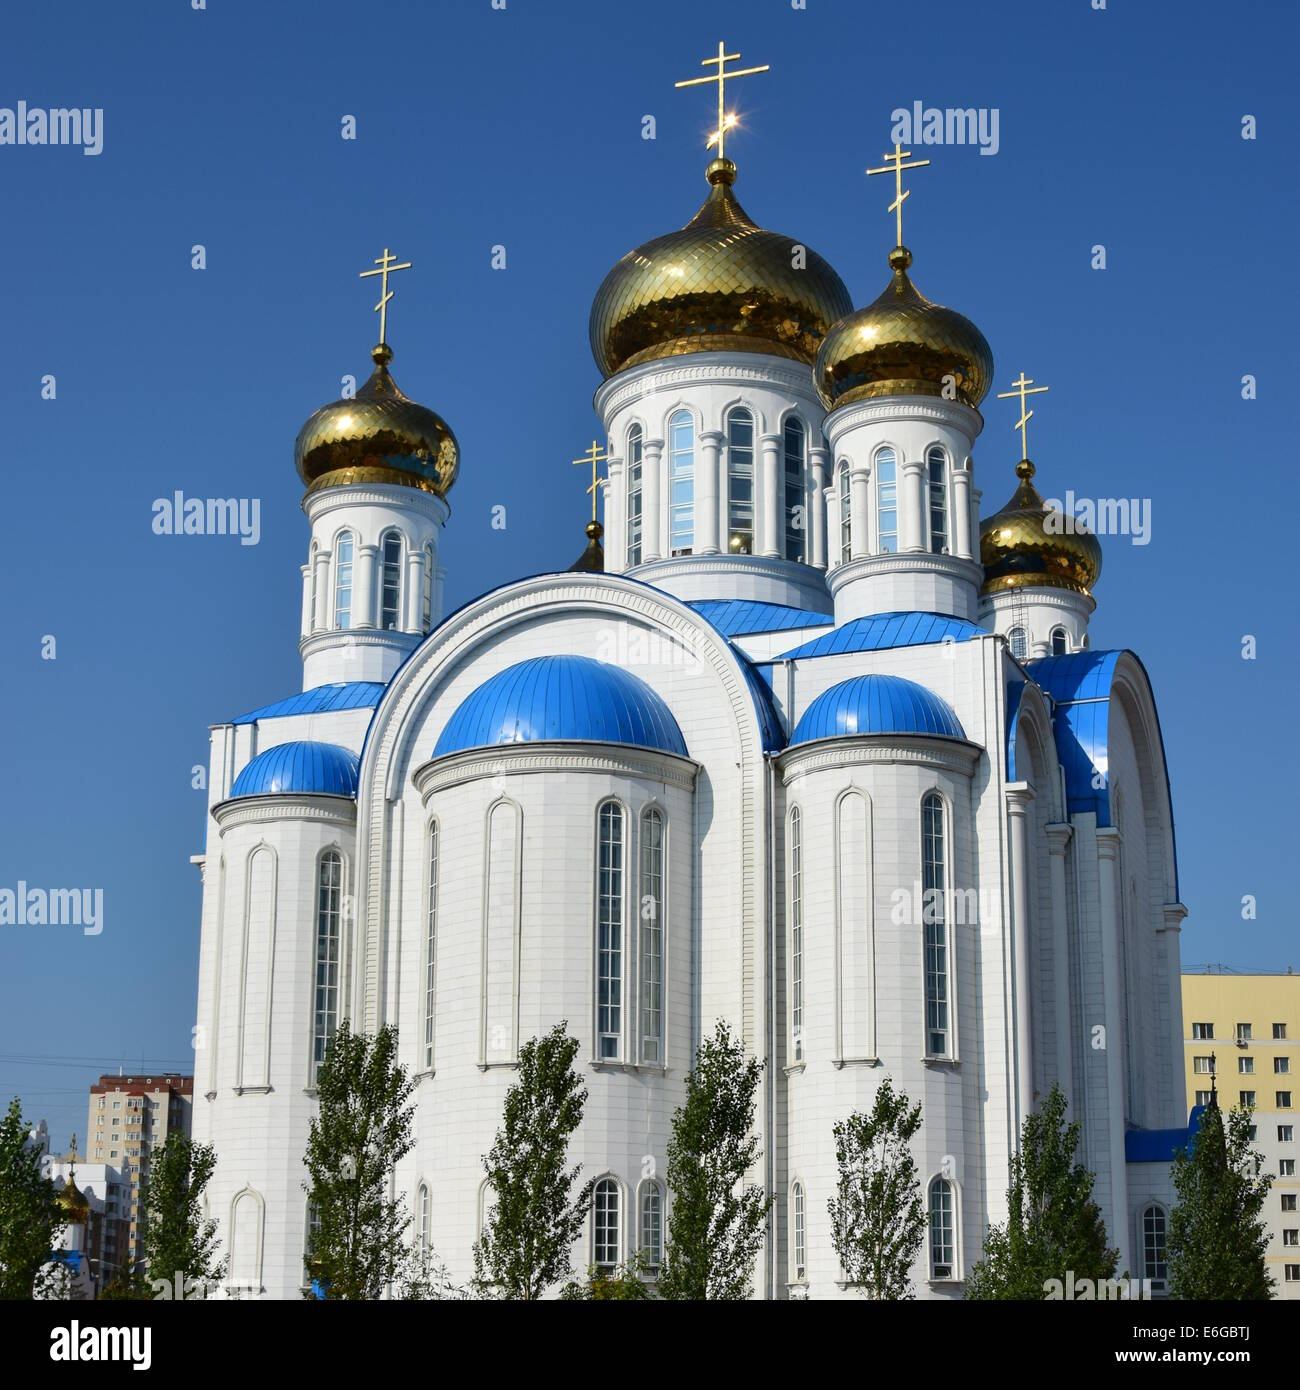 russian orthodox church kazakhstan stockfotos russian. Black Bedroom Furniture Sets. Home Design Ideas